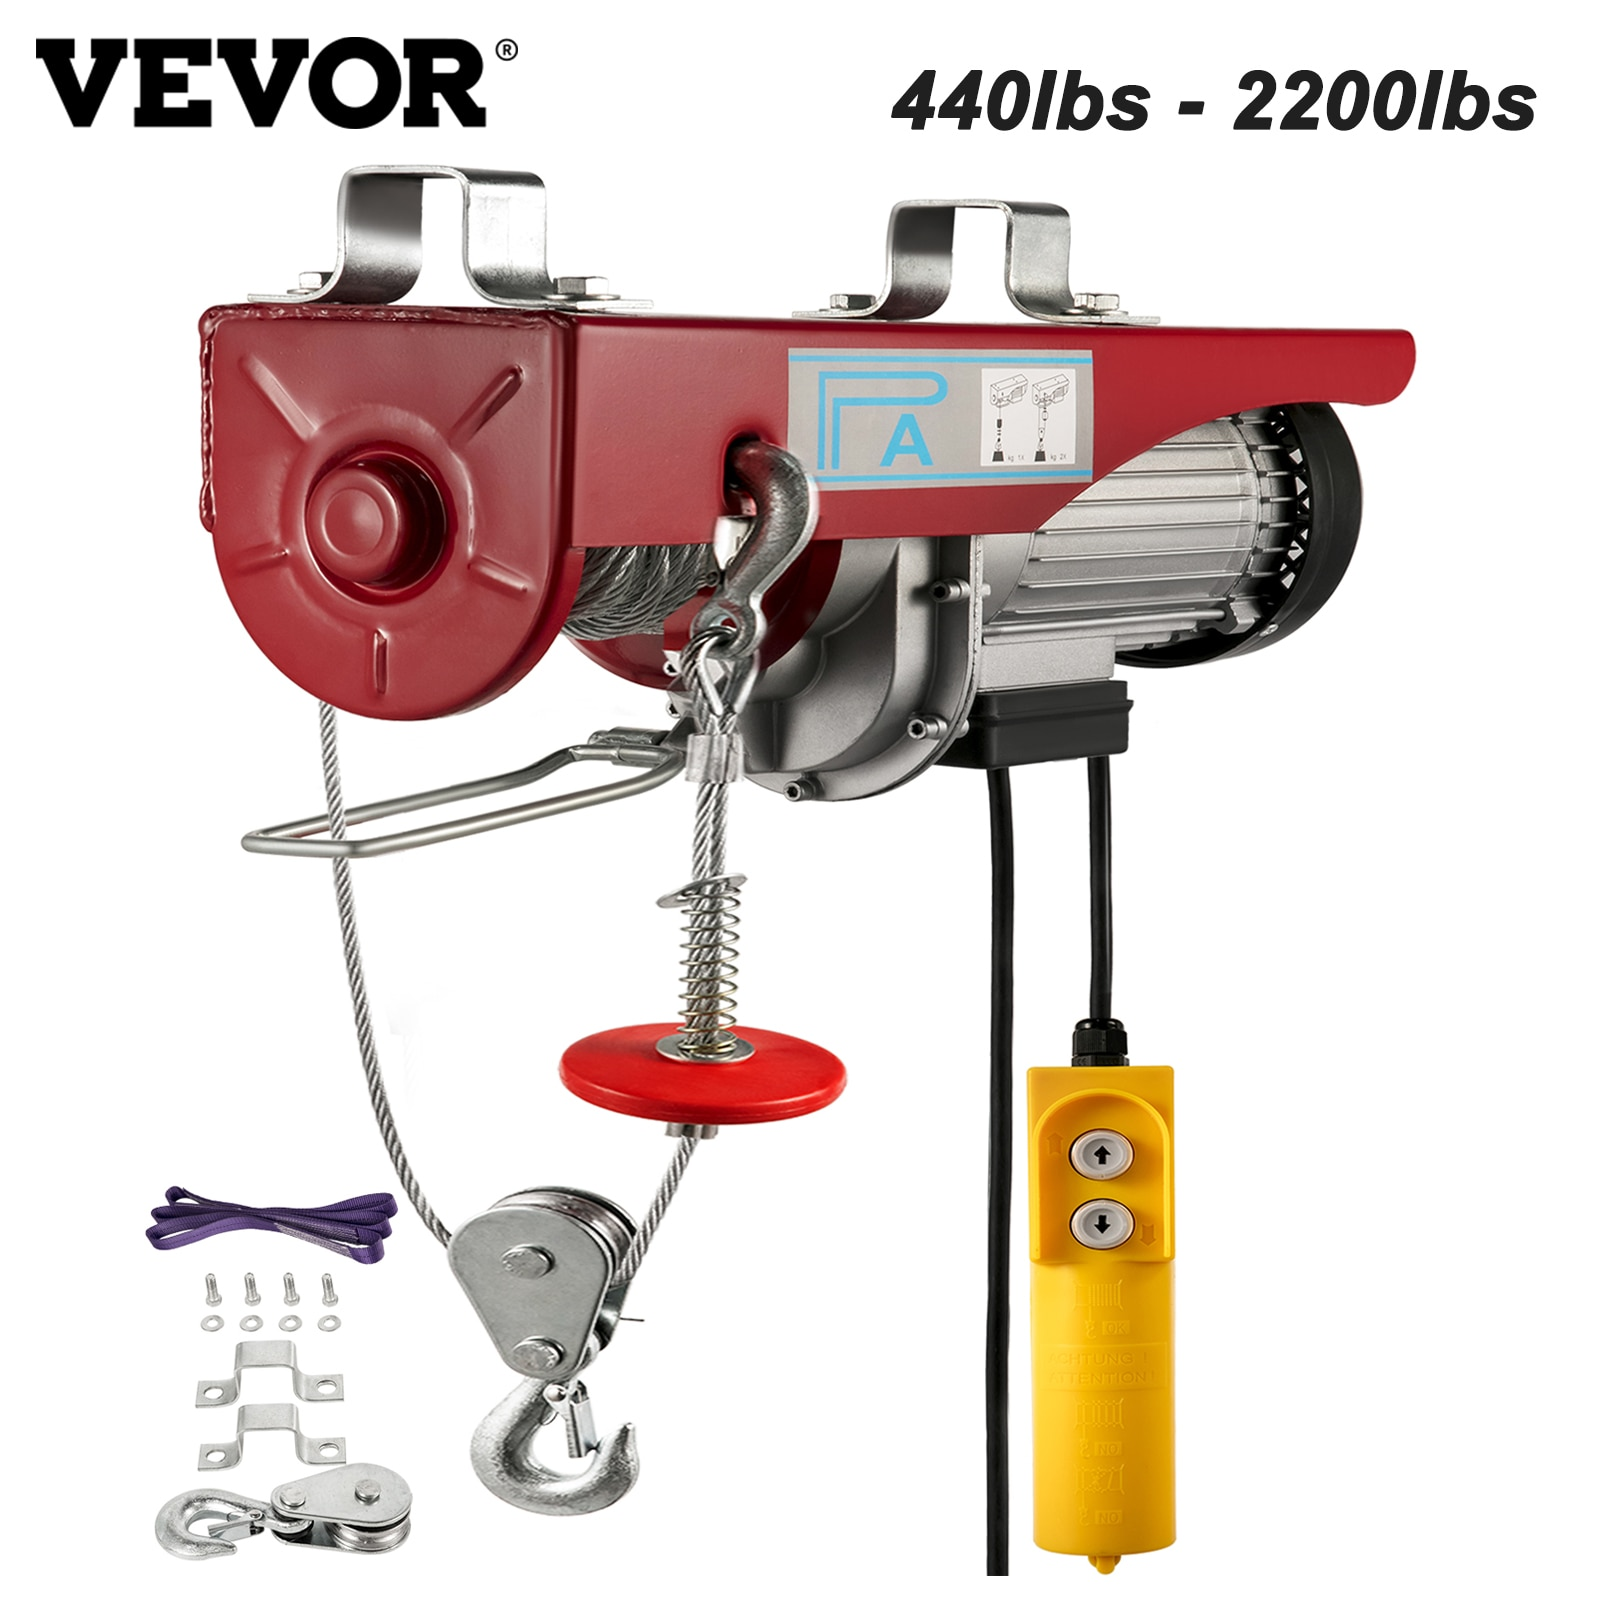 VEVOR 440 880 1320 1760lbs Electric Hoist Crane Portable Lifter Overhead Garage Winch Effort Elevator with Wired Remote Control